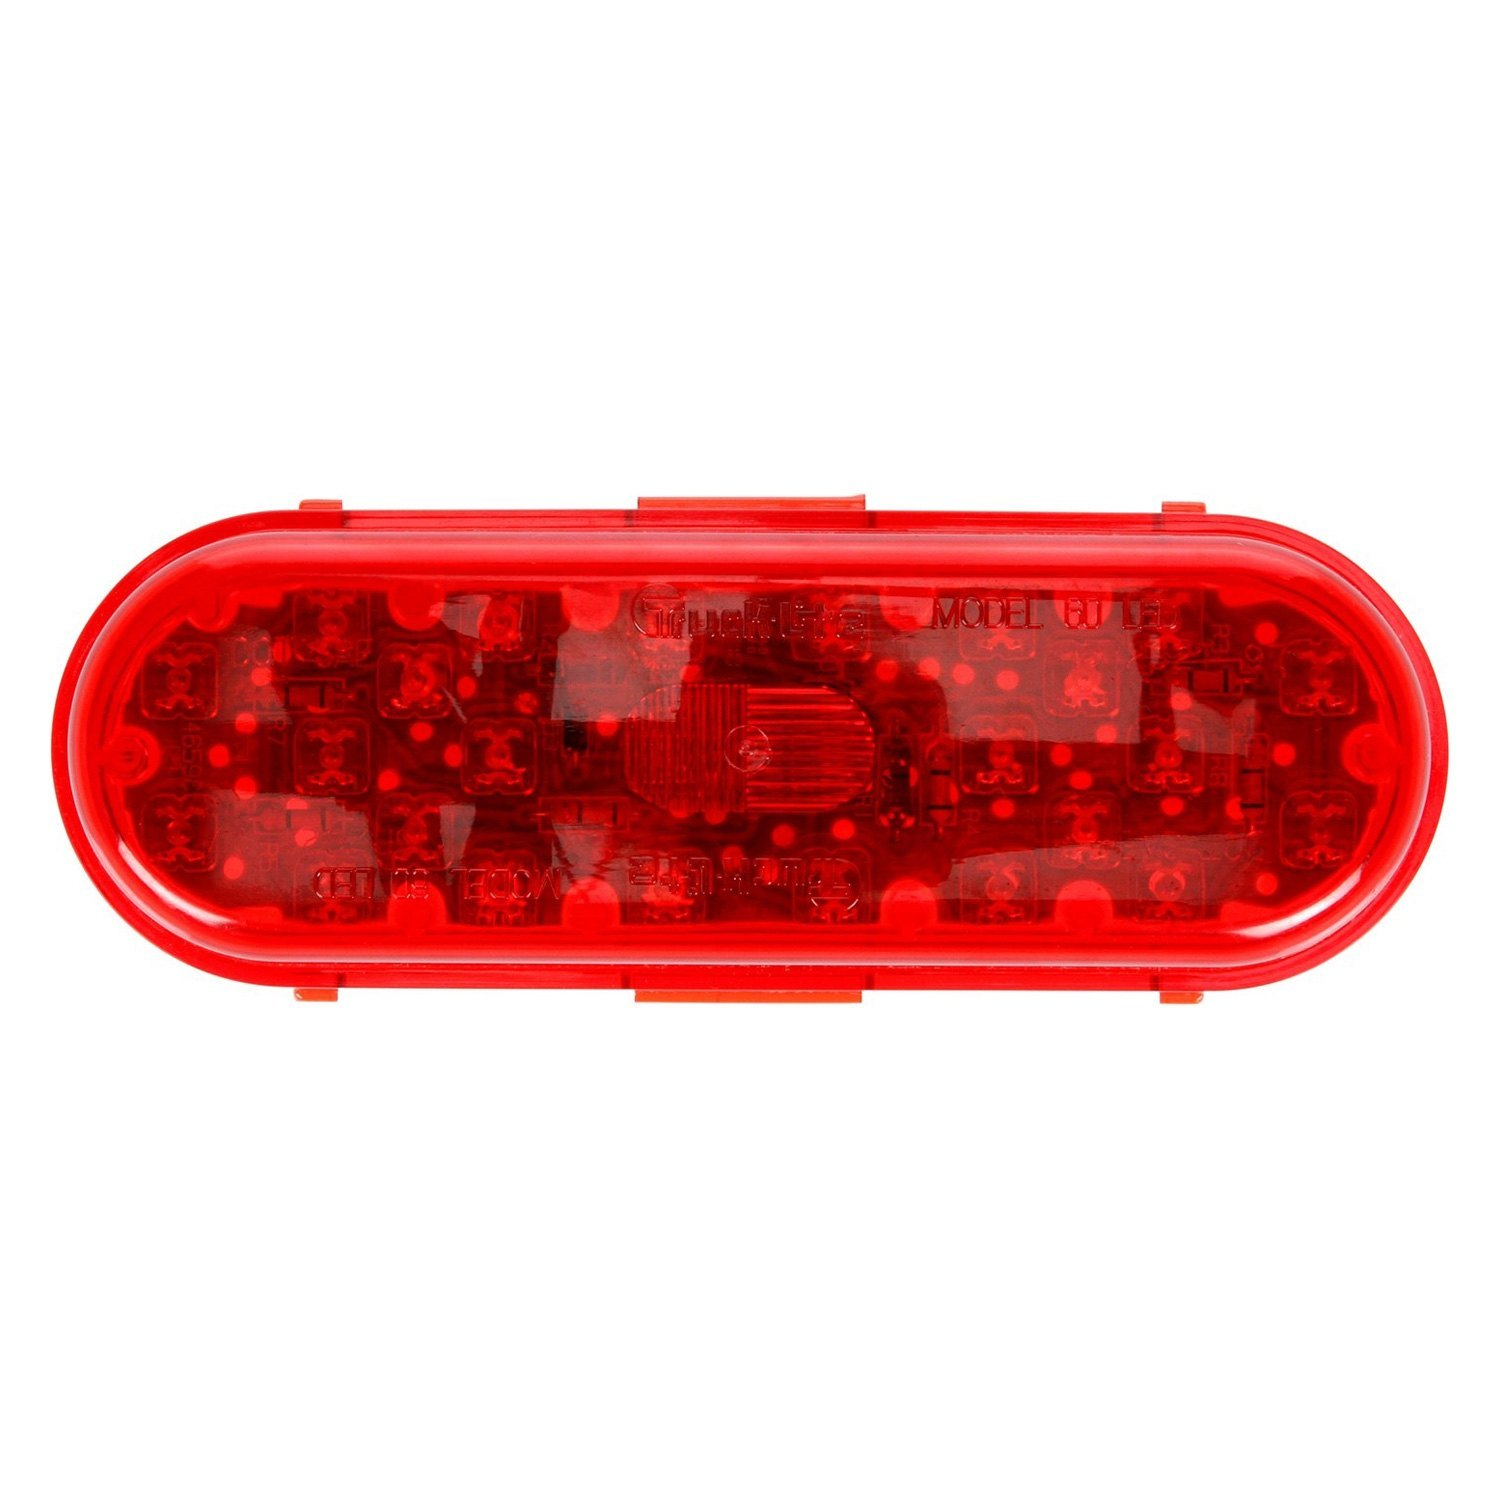 60060r truck lite� 60060r 60 series retrofit high mounted red oval 26 truck lite model 60 wiring diagram at readyjetset.co